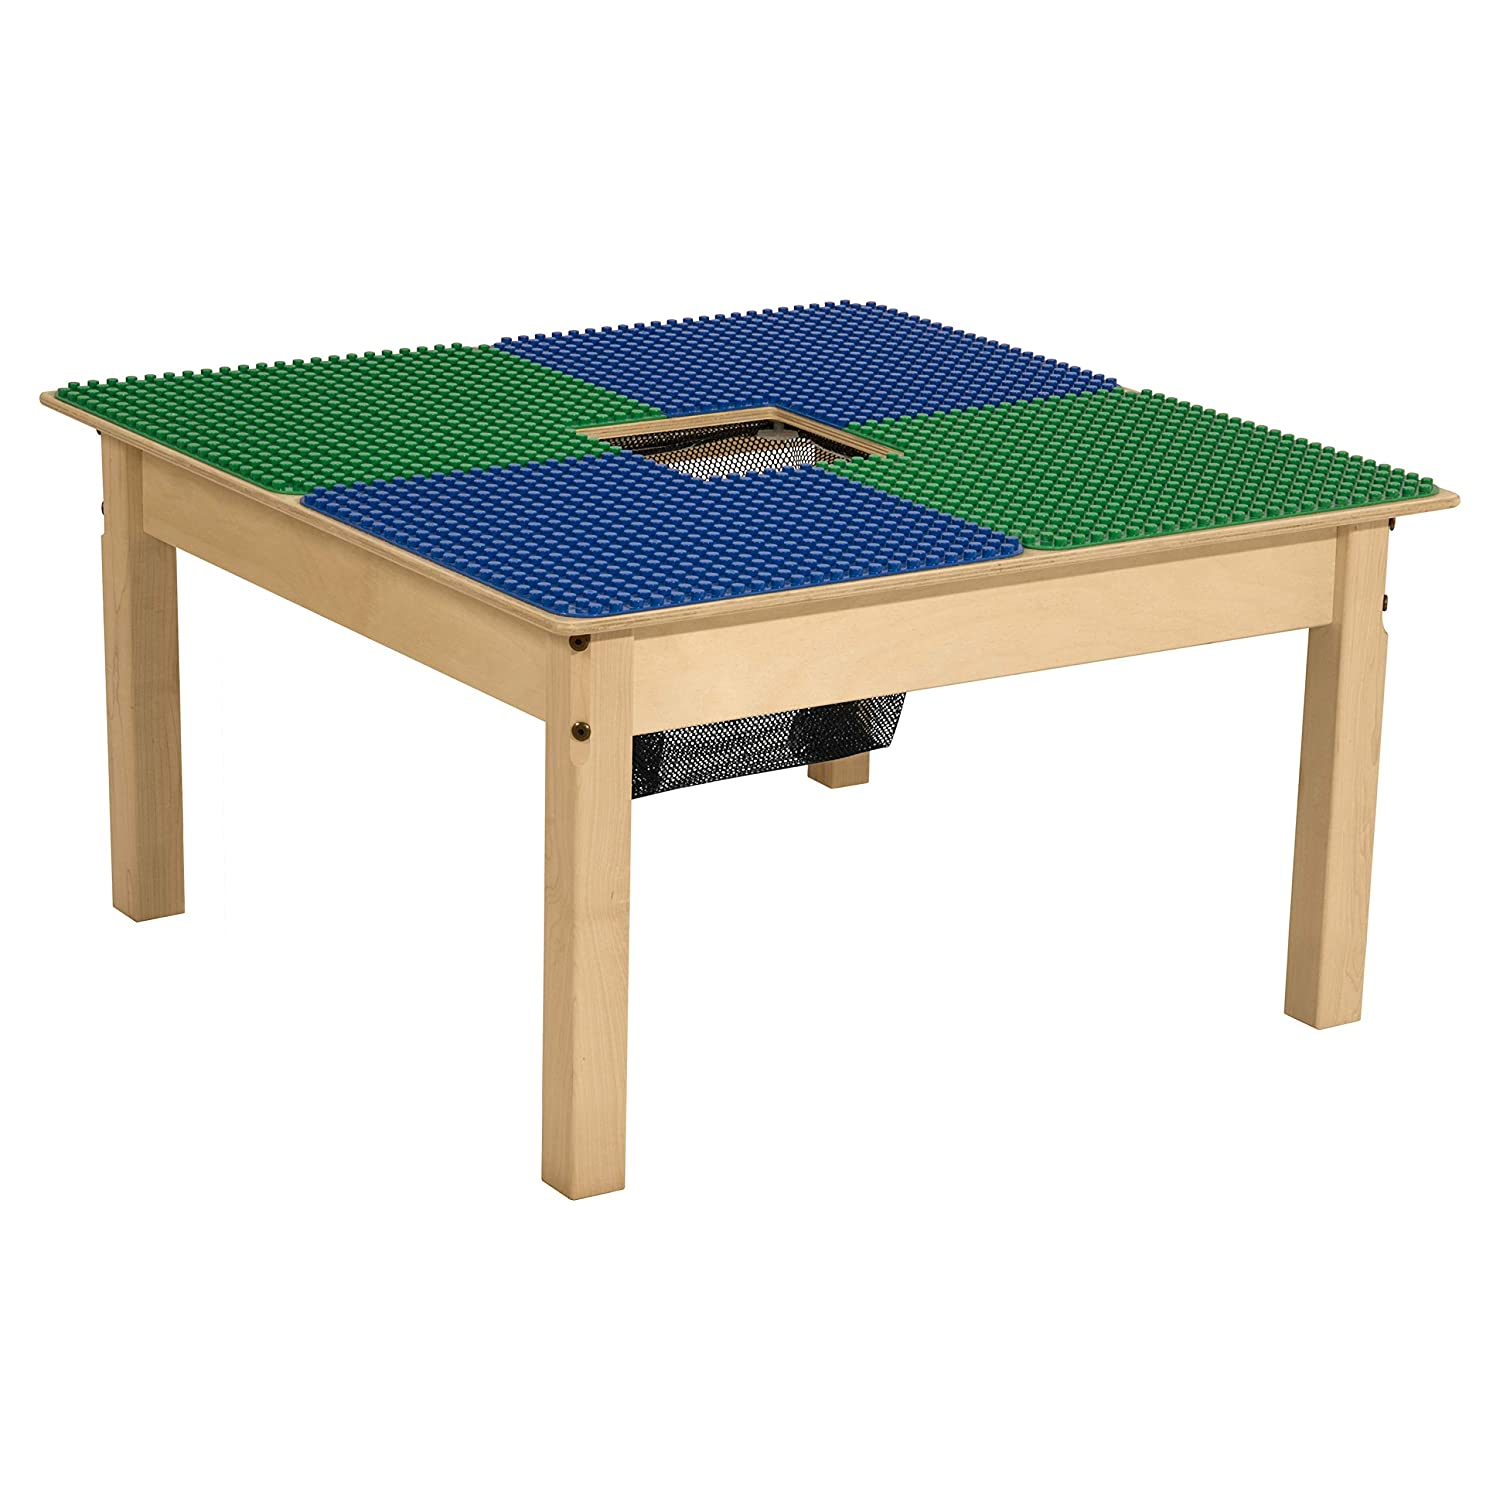 "Wood Designs Time-2-Play Duplo Compatible Square Table with Storage for Kids, Blue & Green, 16.5"" Legs (TP3131PGN16-BG)"